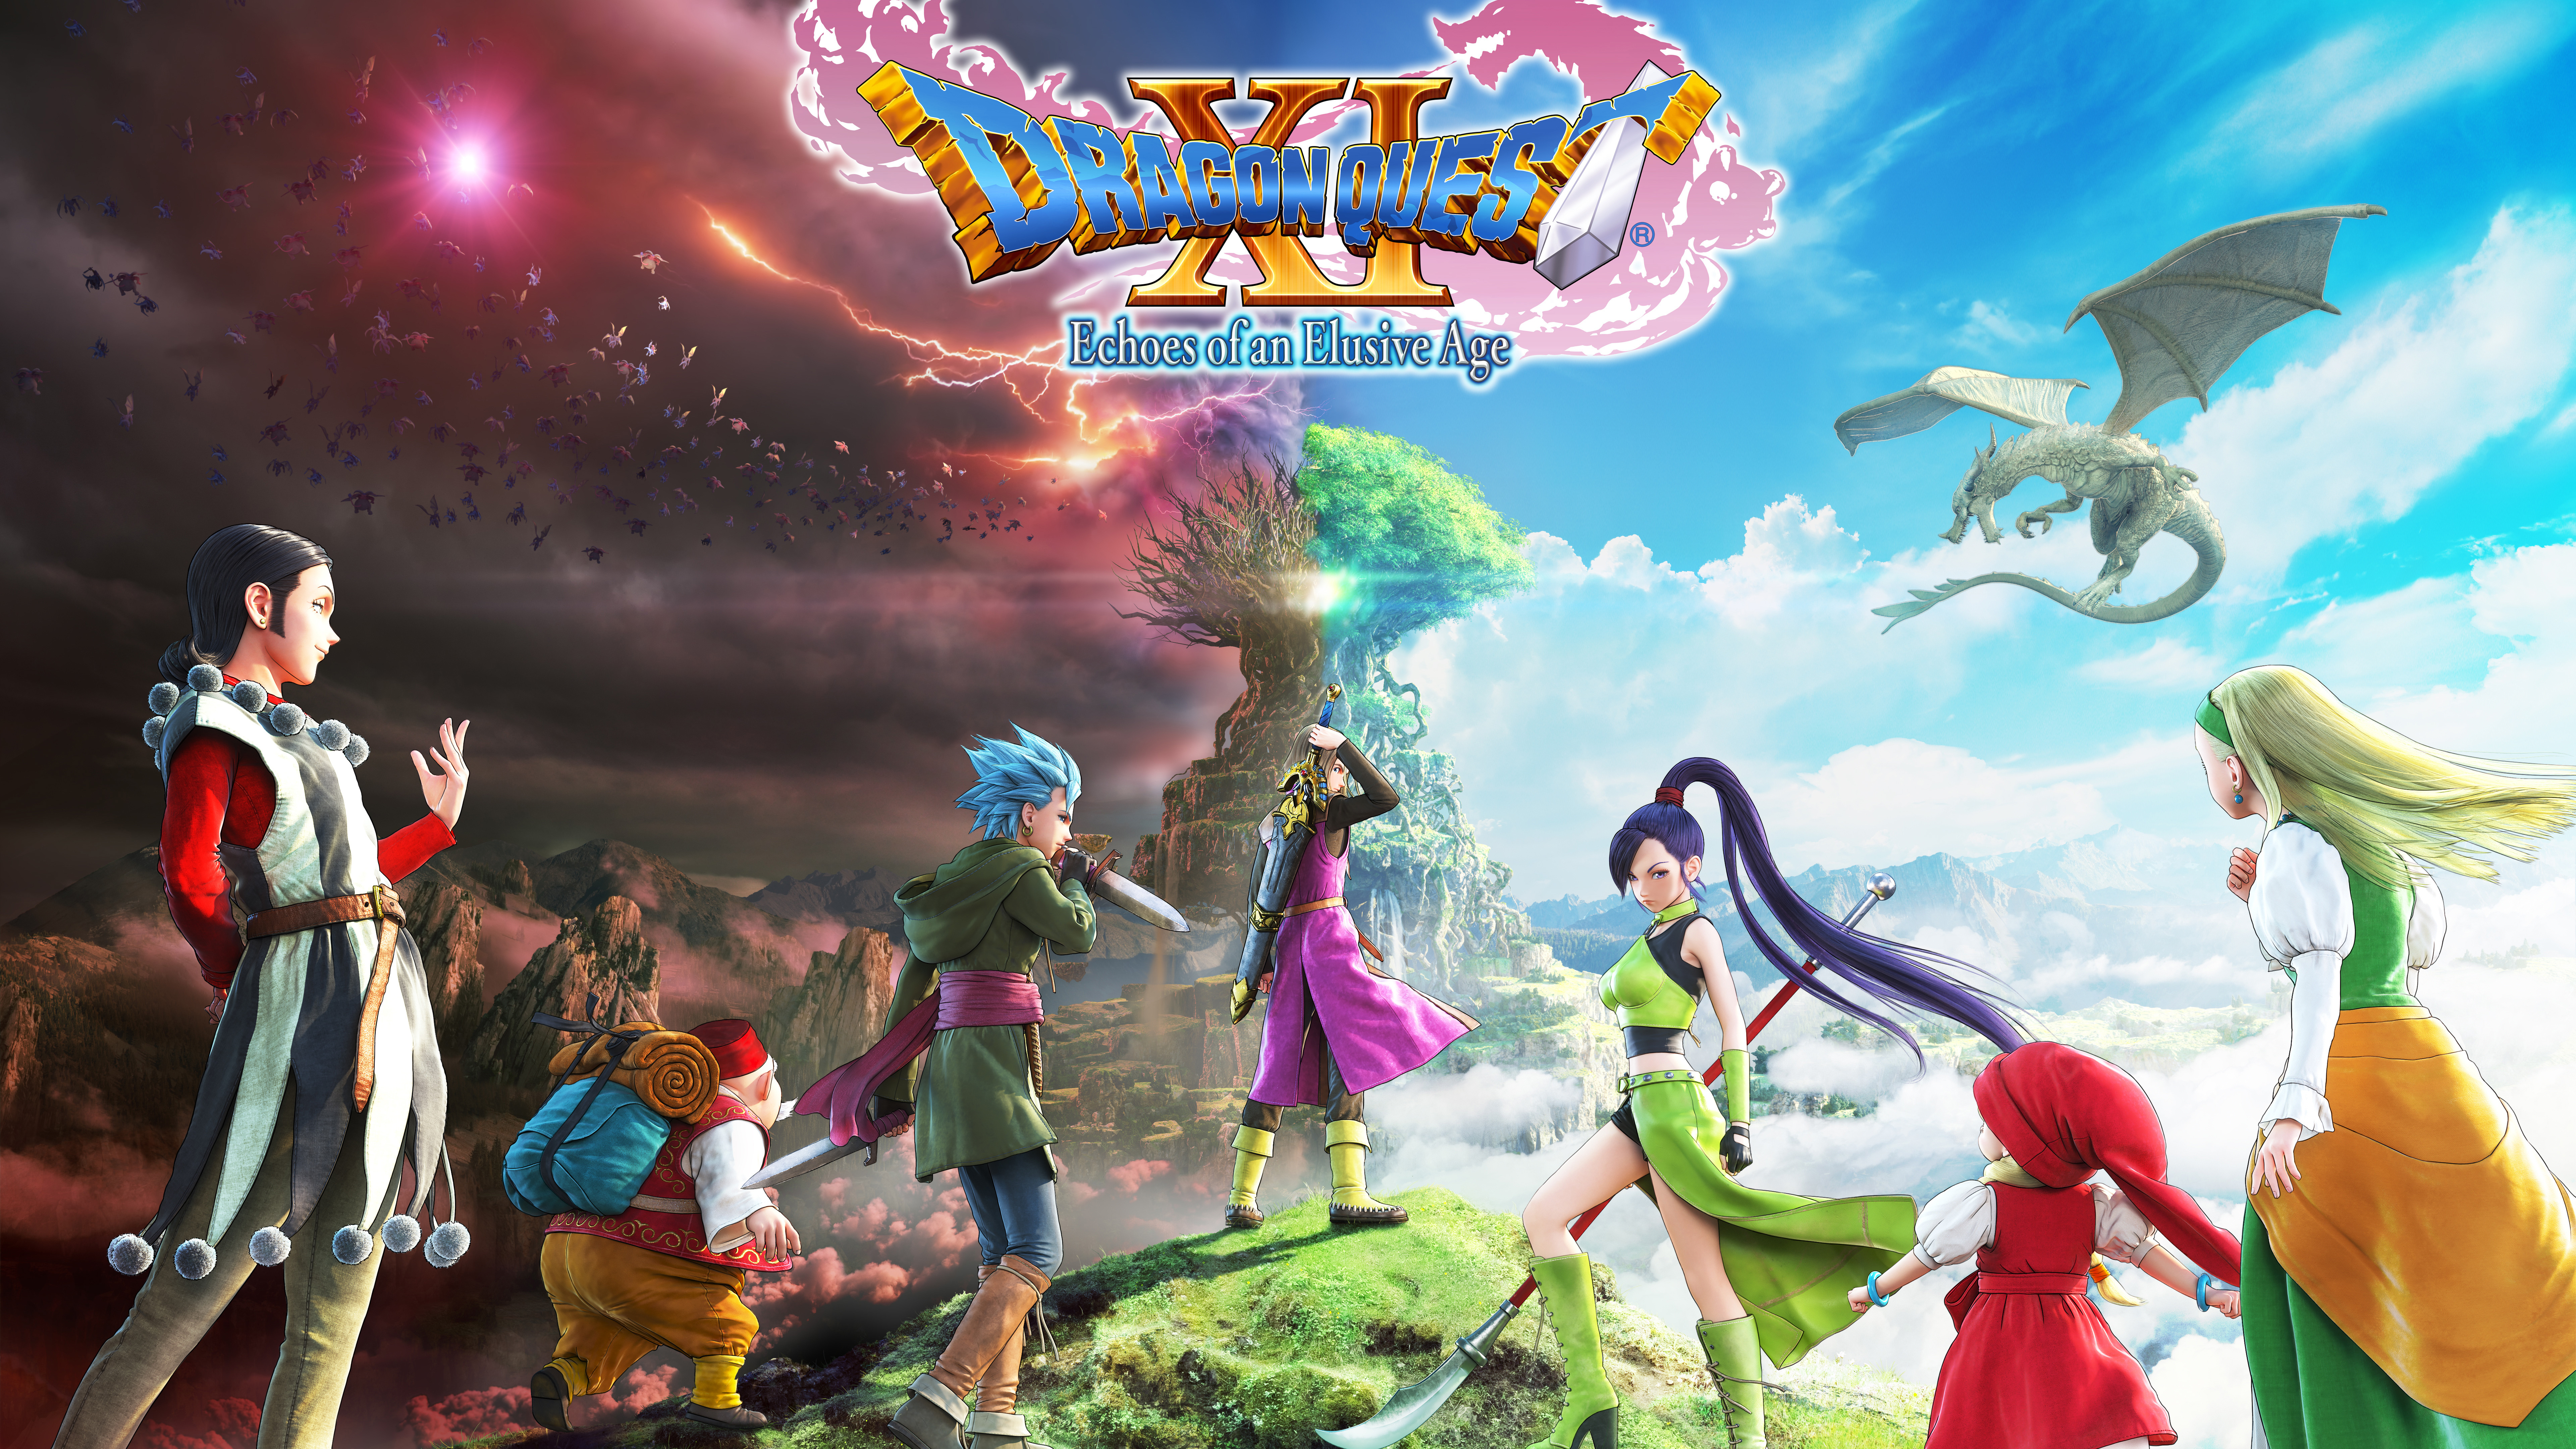 7680x4320 dragon quest xi 8k 8k hd 4k wallpapers images